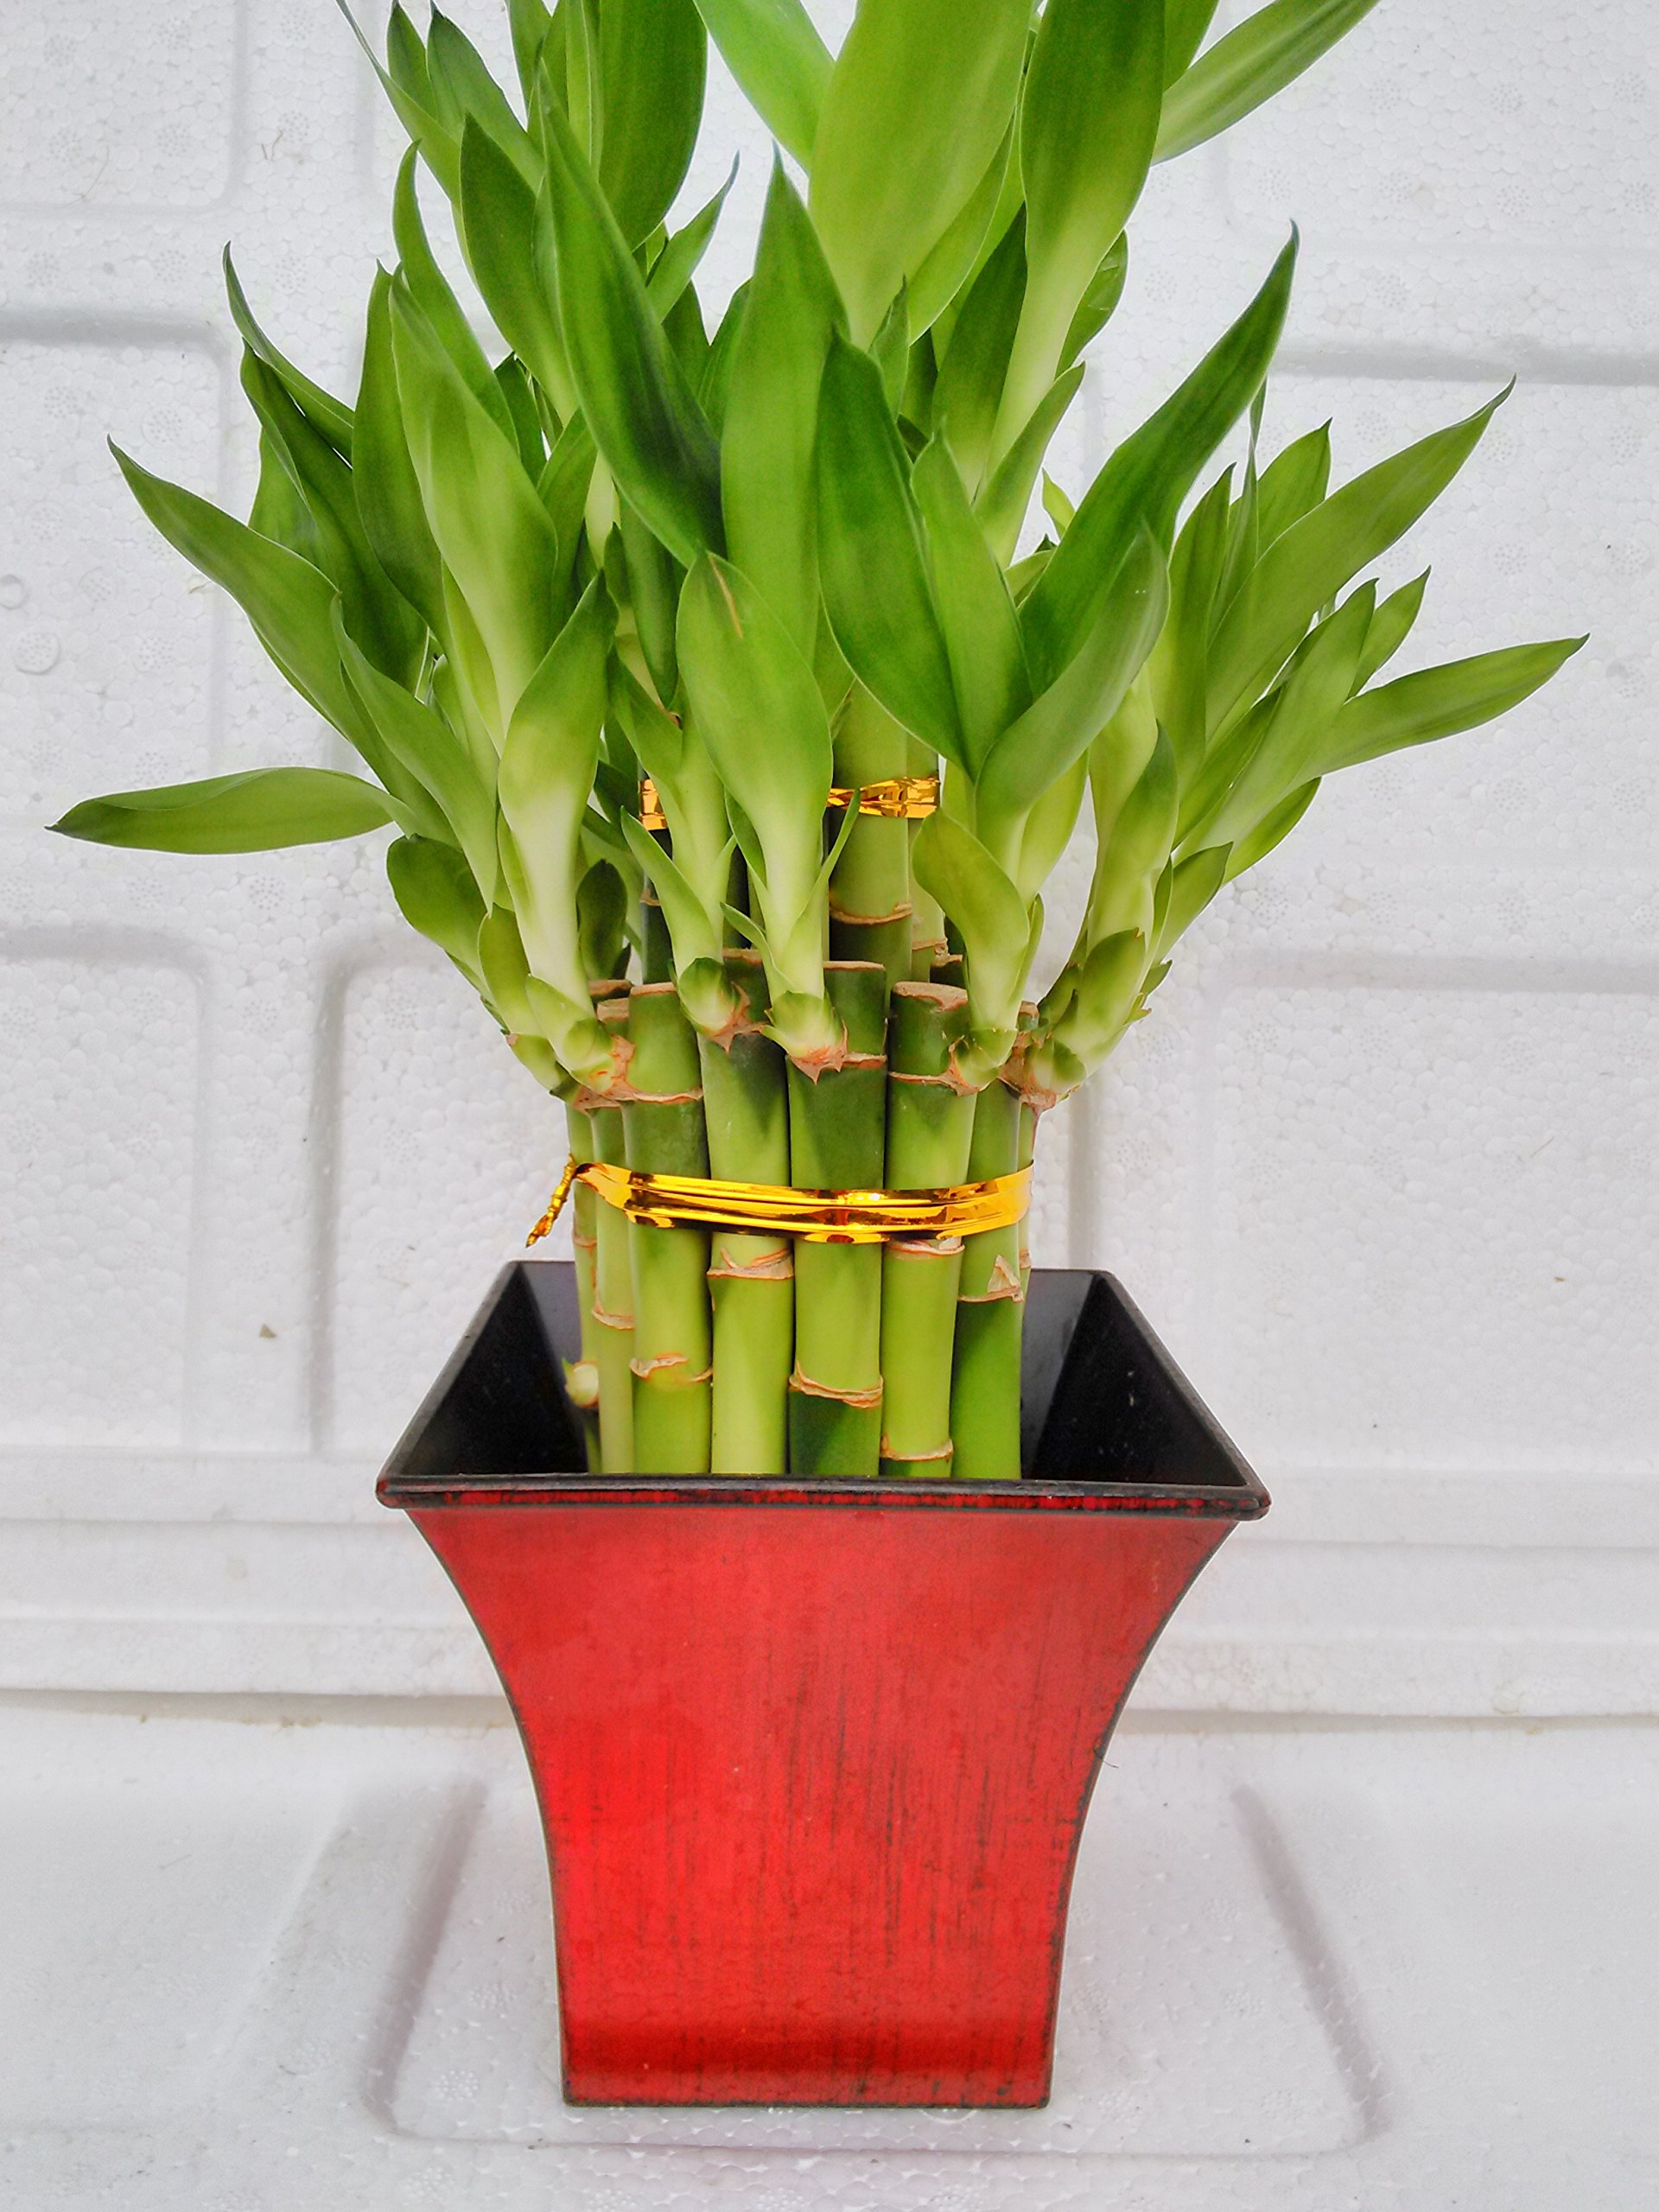 Jmbamboo 2 Tier Lucky Bamboo - 6'' & 4'' Lucky Bamboos in 2 Tiers -With 5'' Vase Color Fuchsia